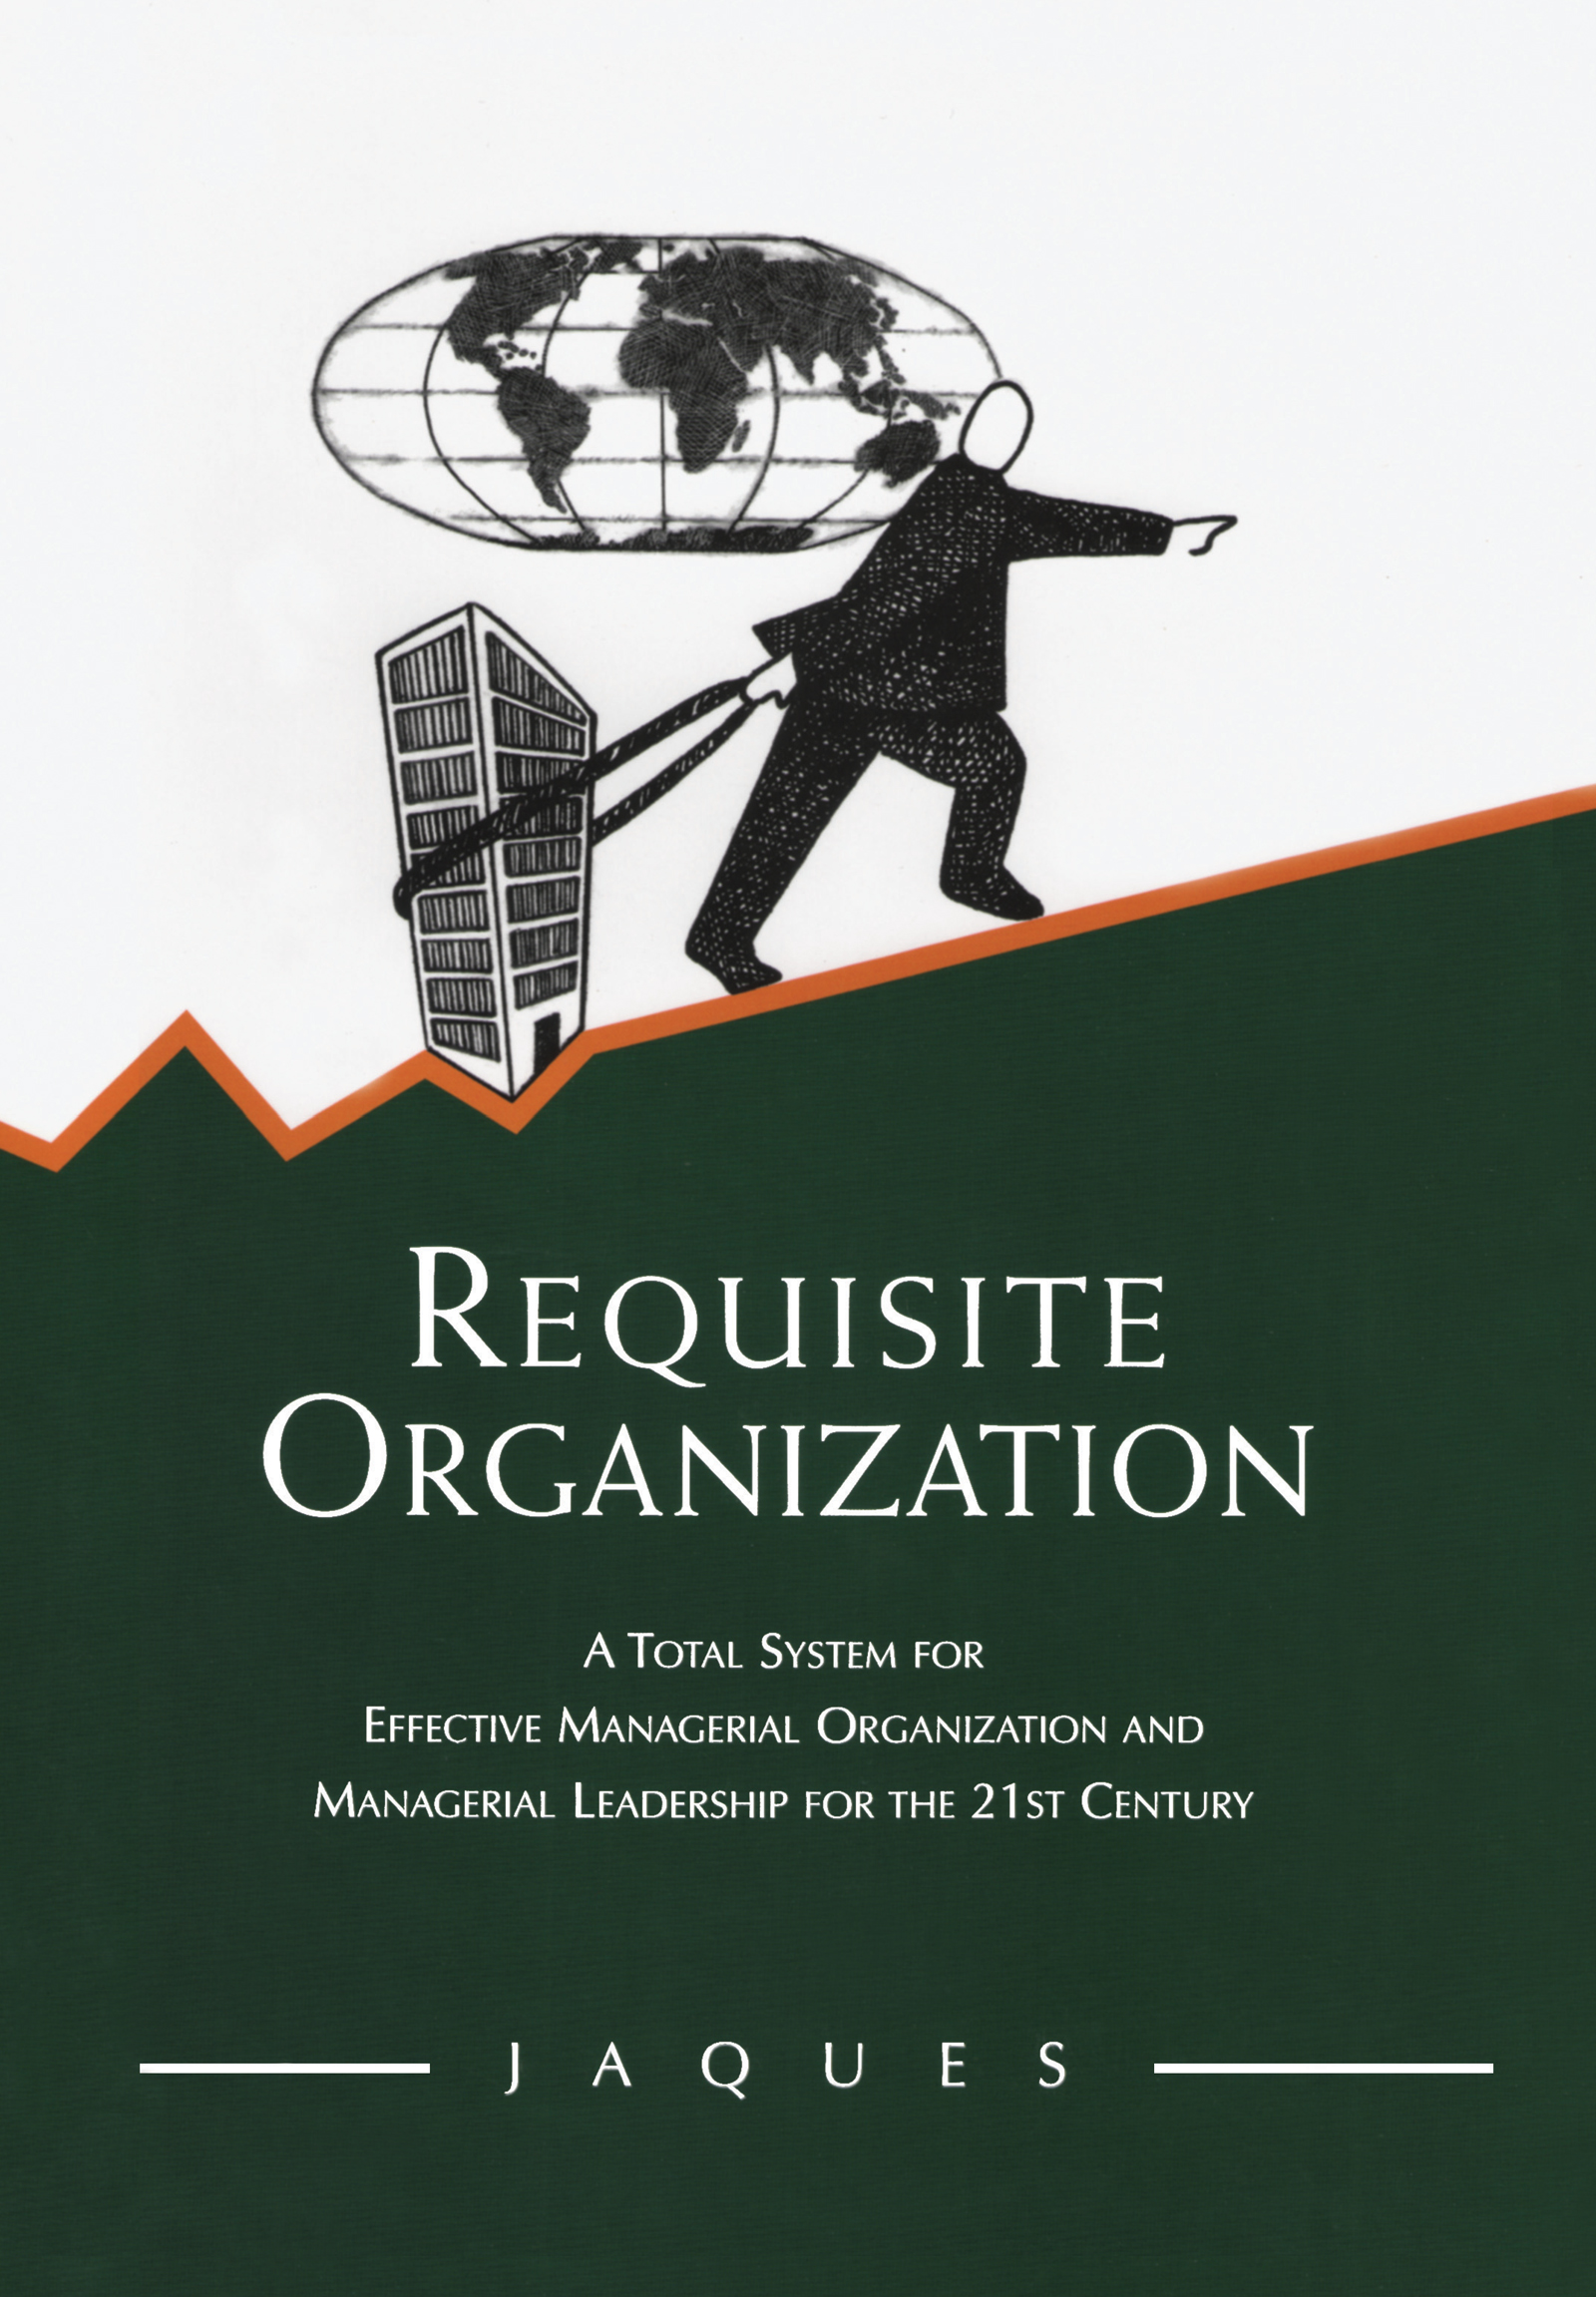 Requisite Organization: A Total System for Effective Managerial Organization and Managerial Leadership for the 21st Century book cover